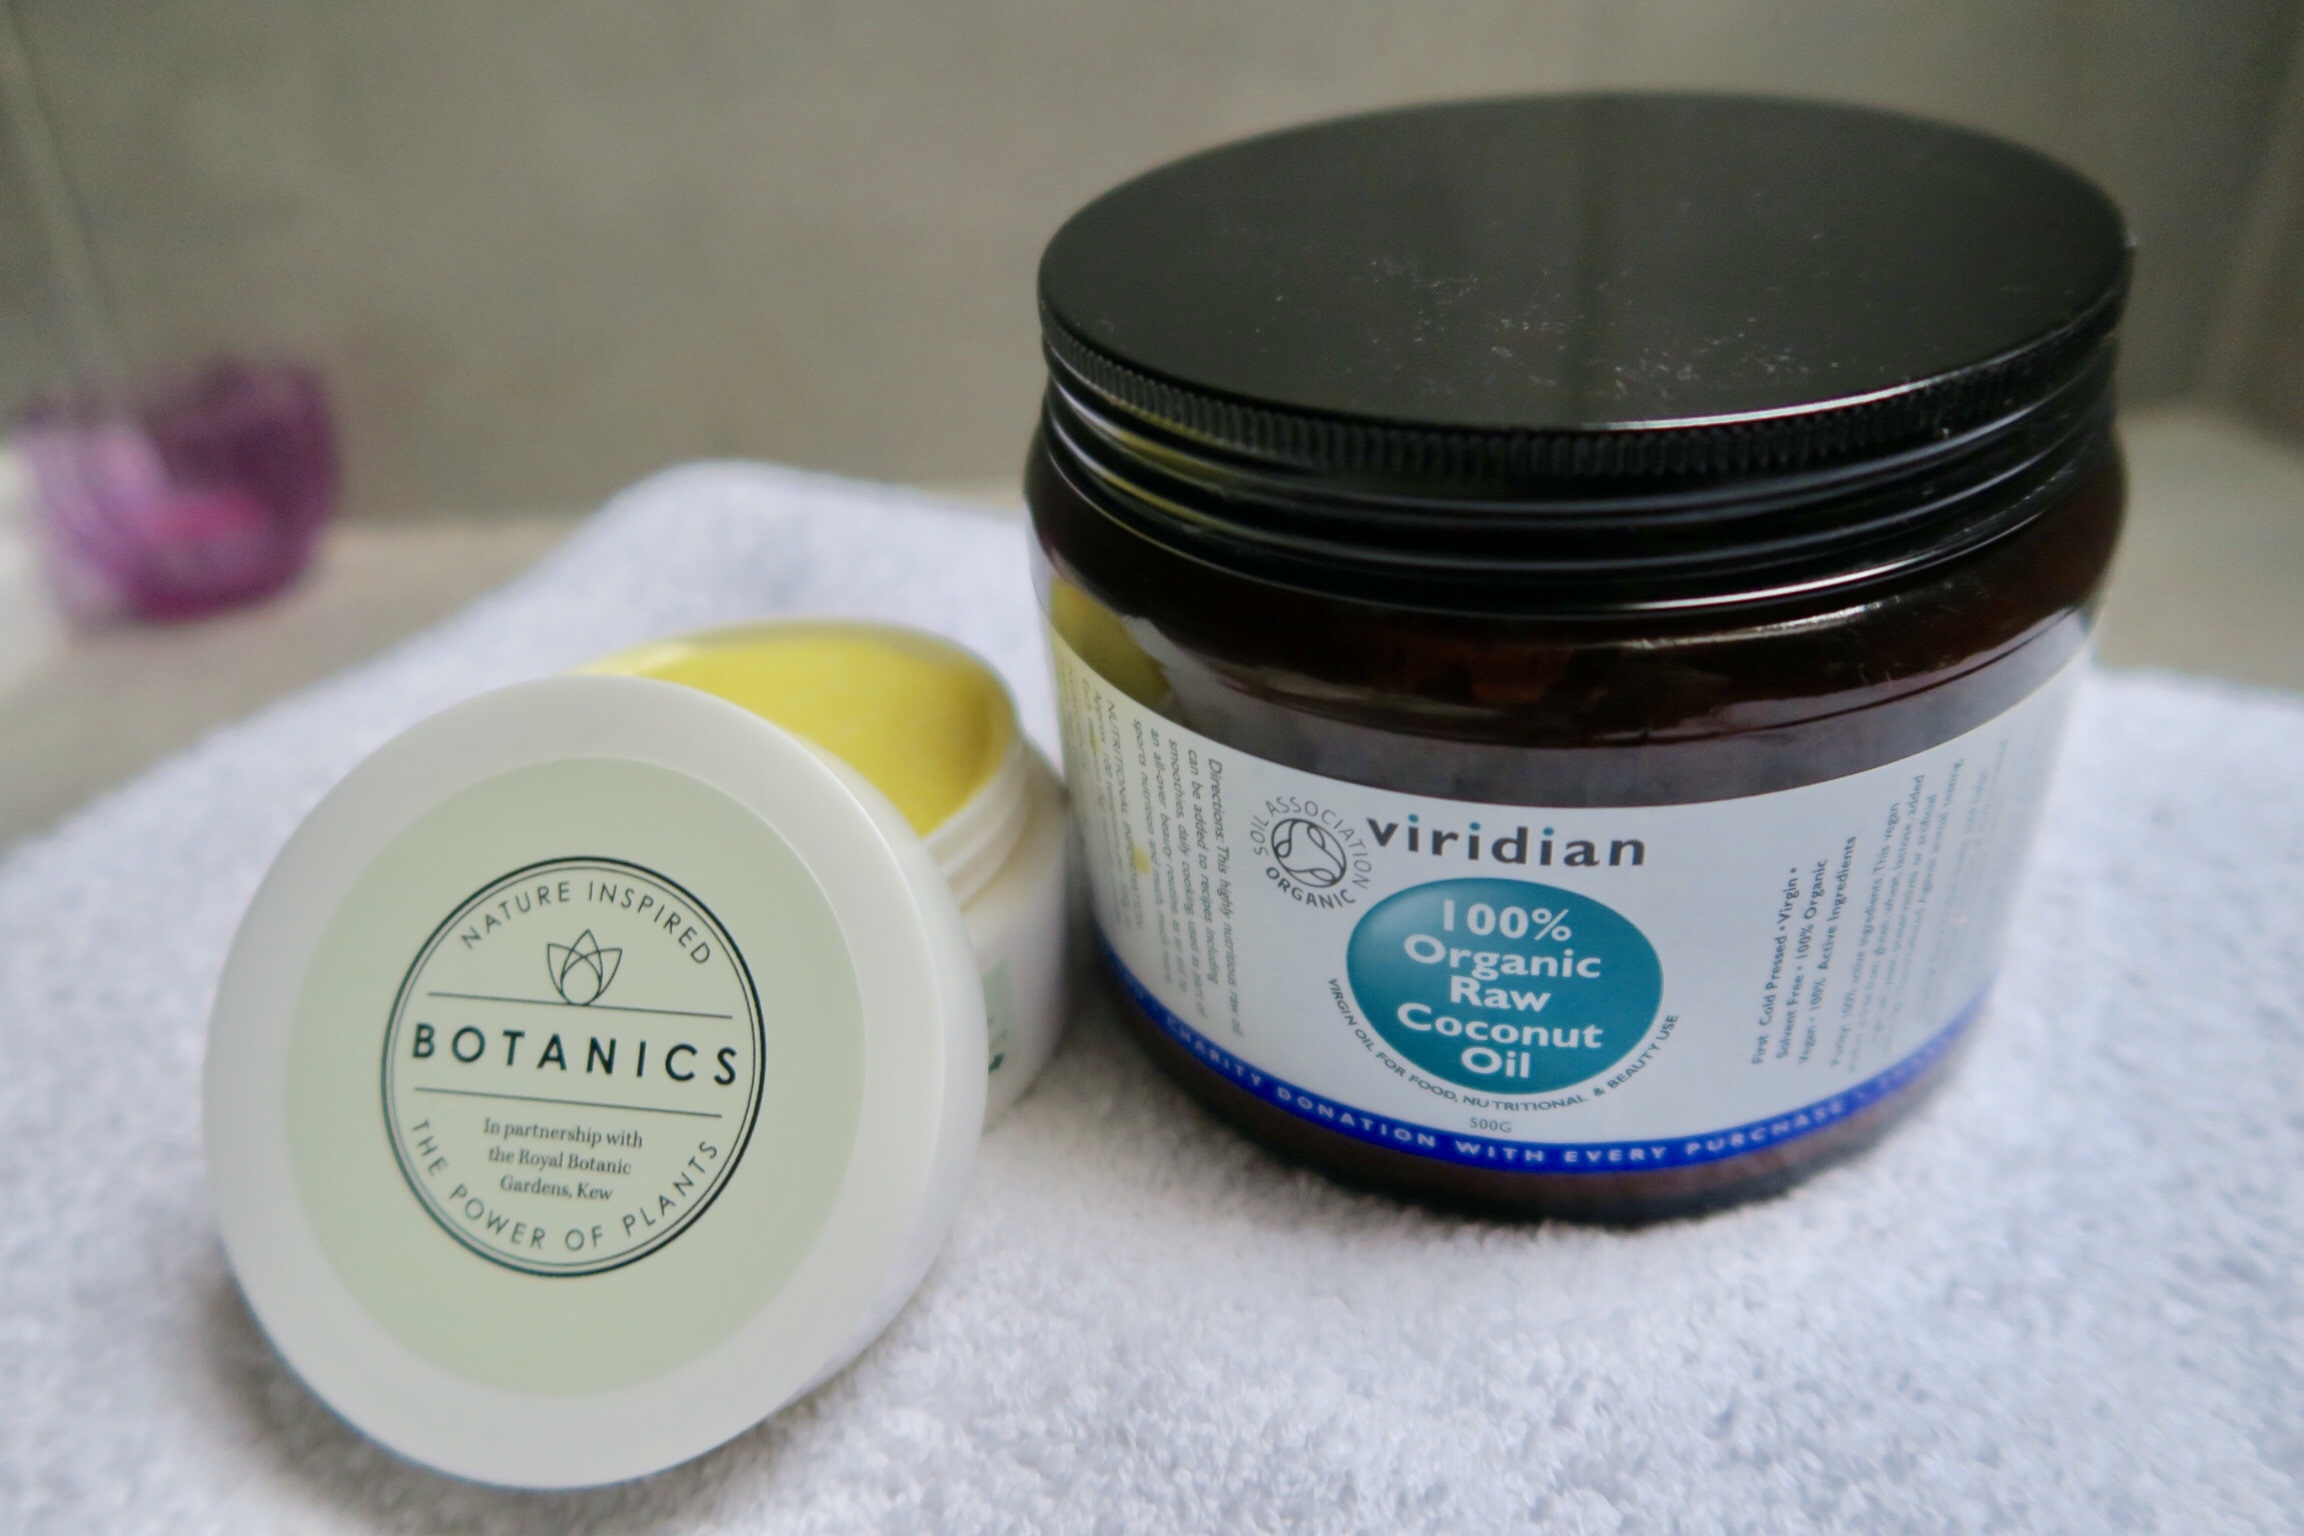 Boots Botanics Hot Cloth Cleansing Balm, £8.99 and Viridian Organic Coconut Oil, £15.